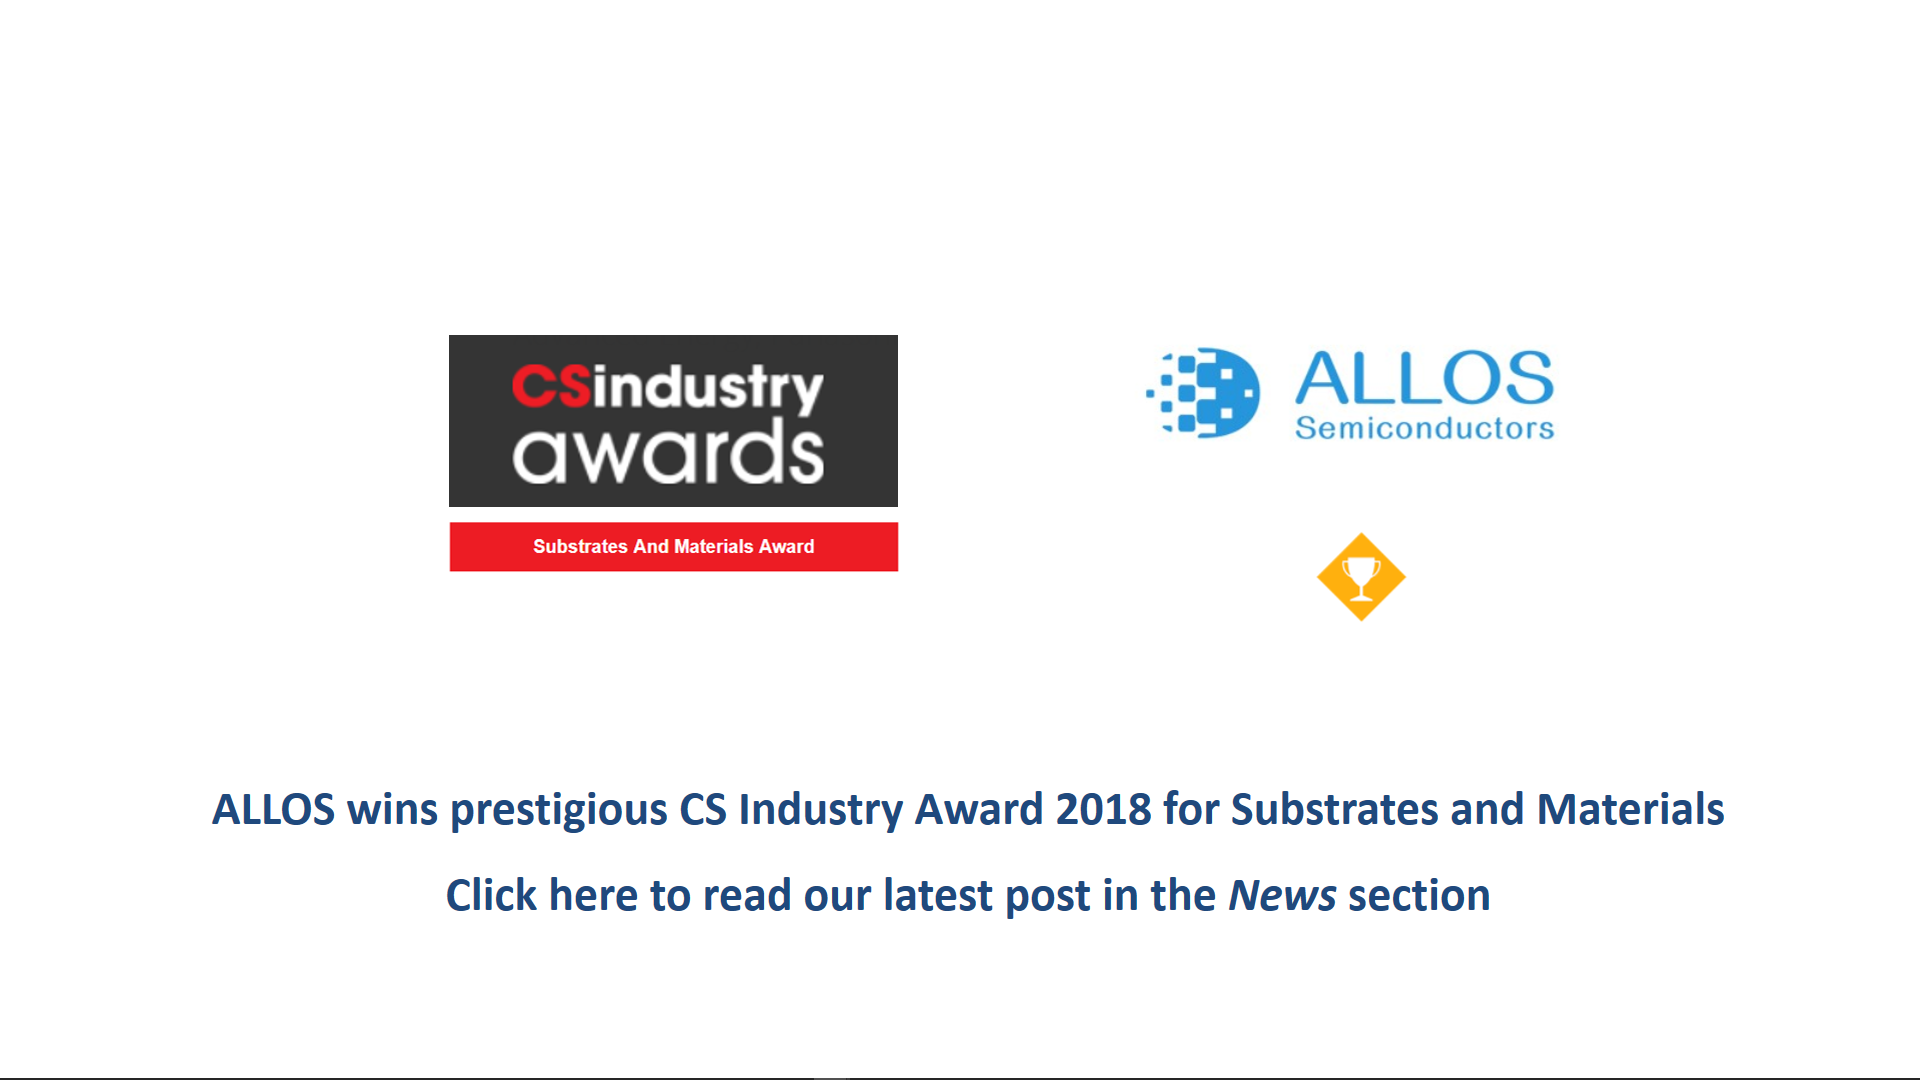 ALLOS wins CS Industry Award